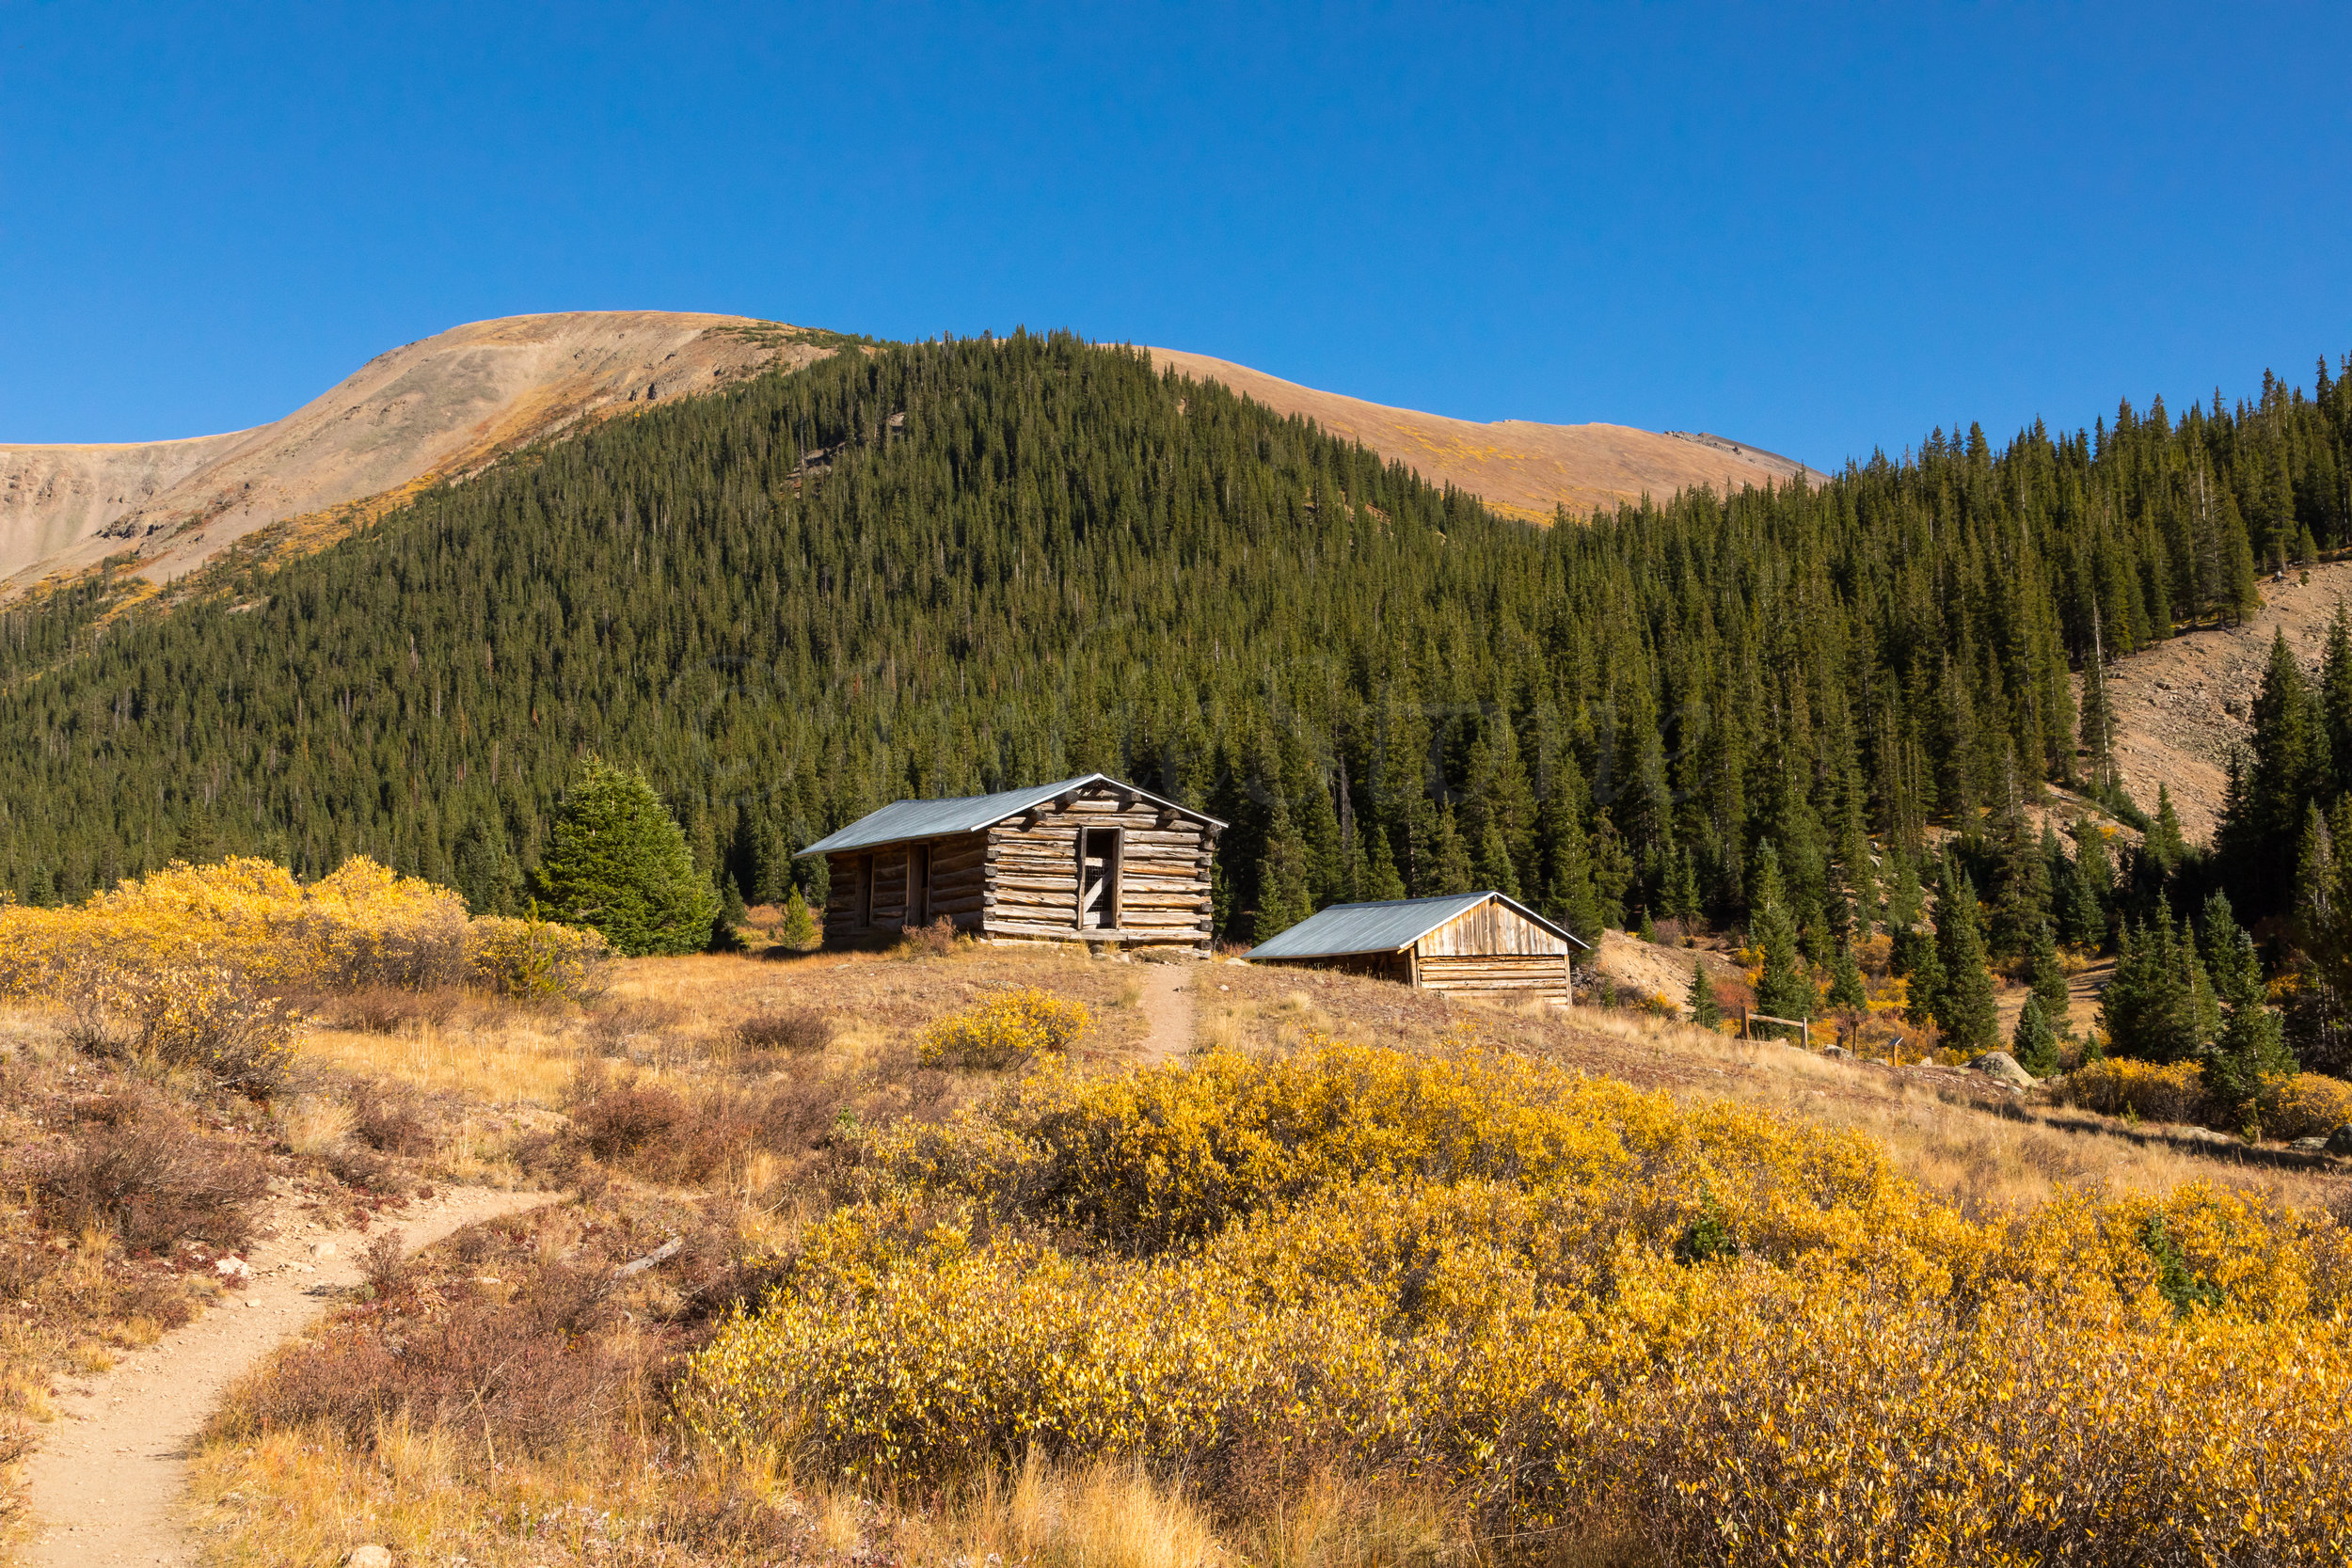 Independence Pass, Image # 1645